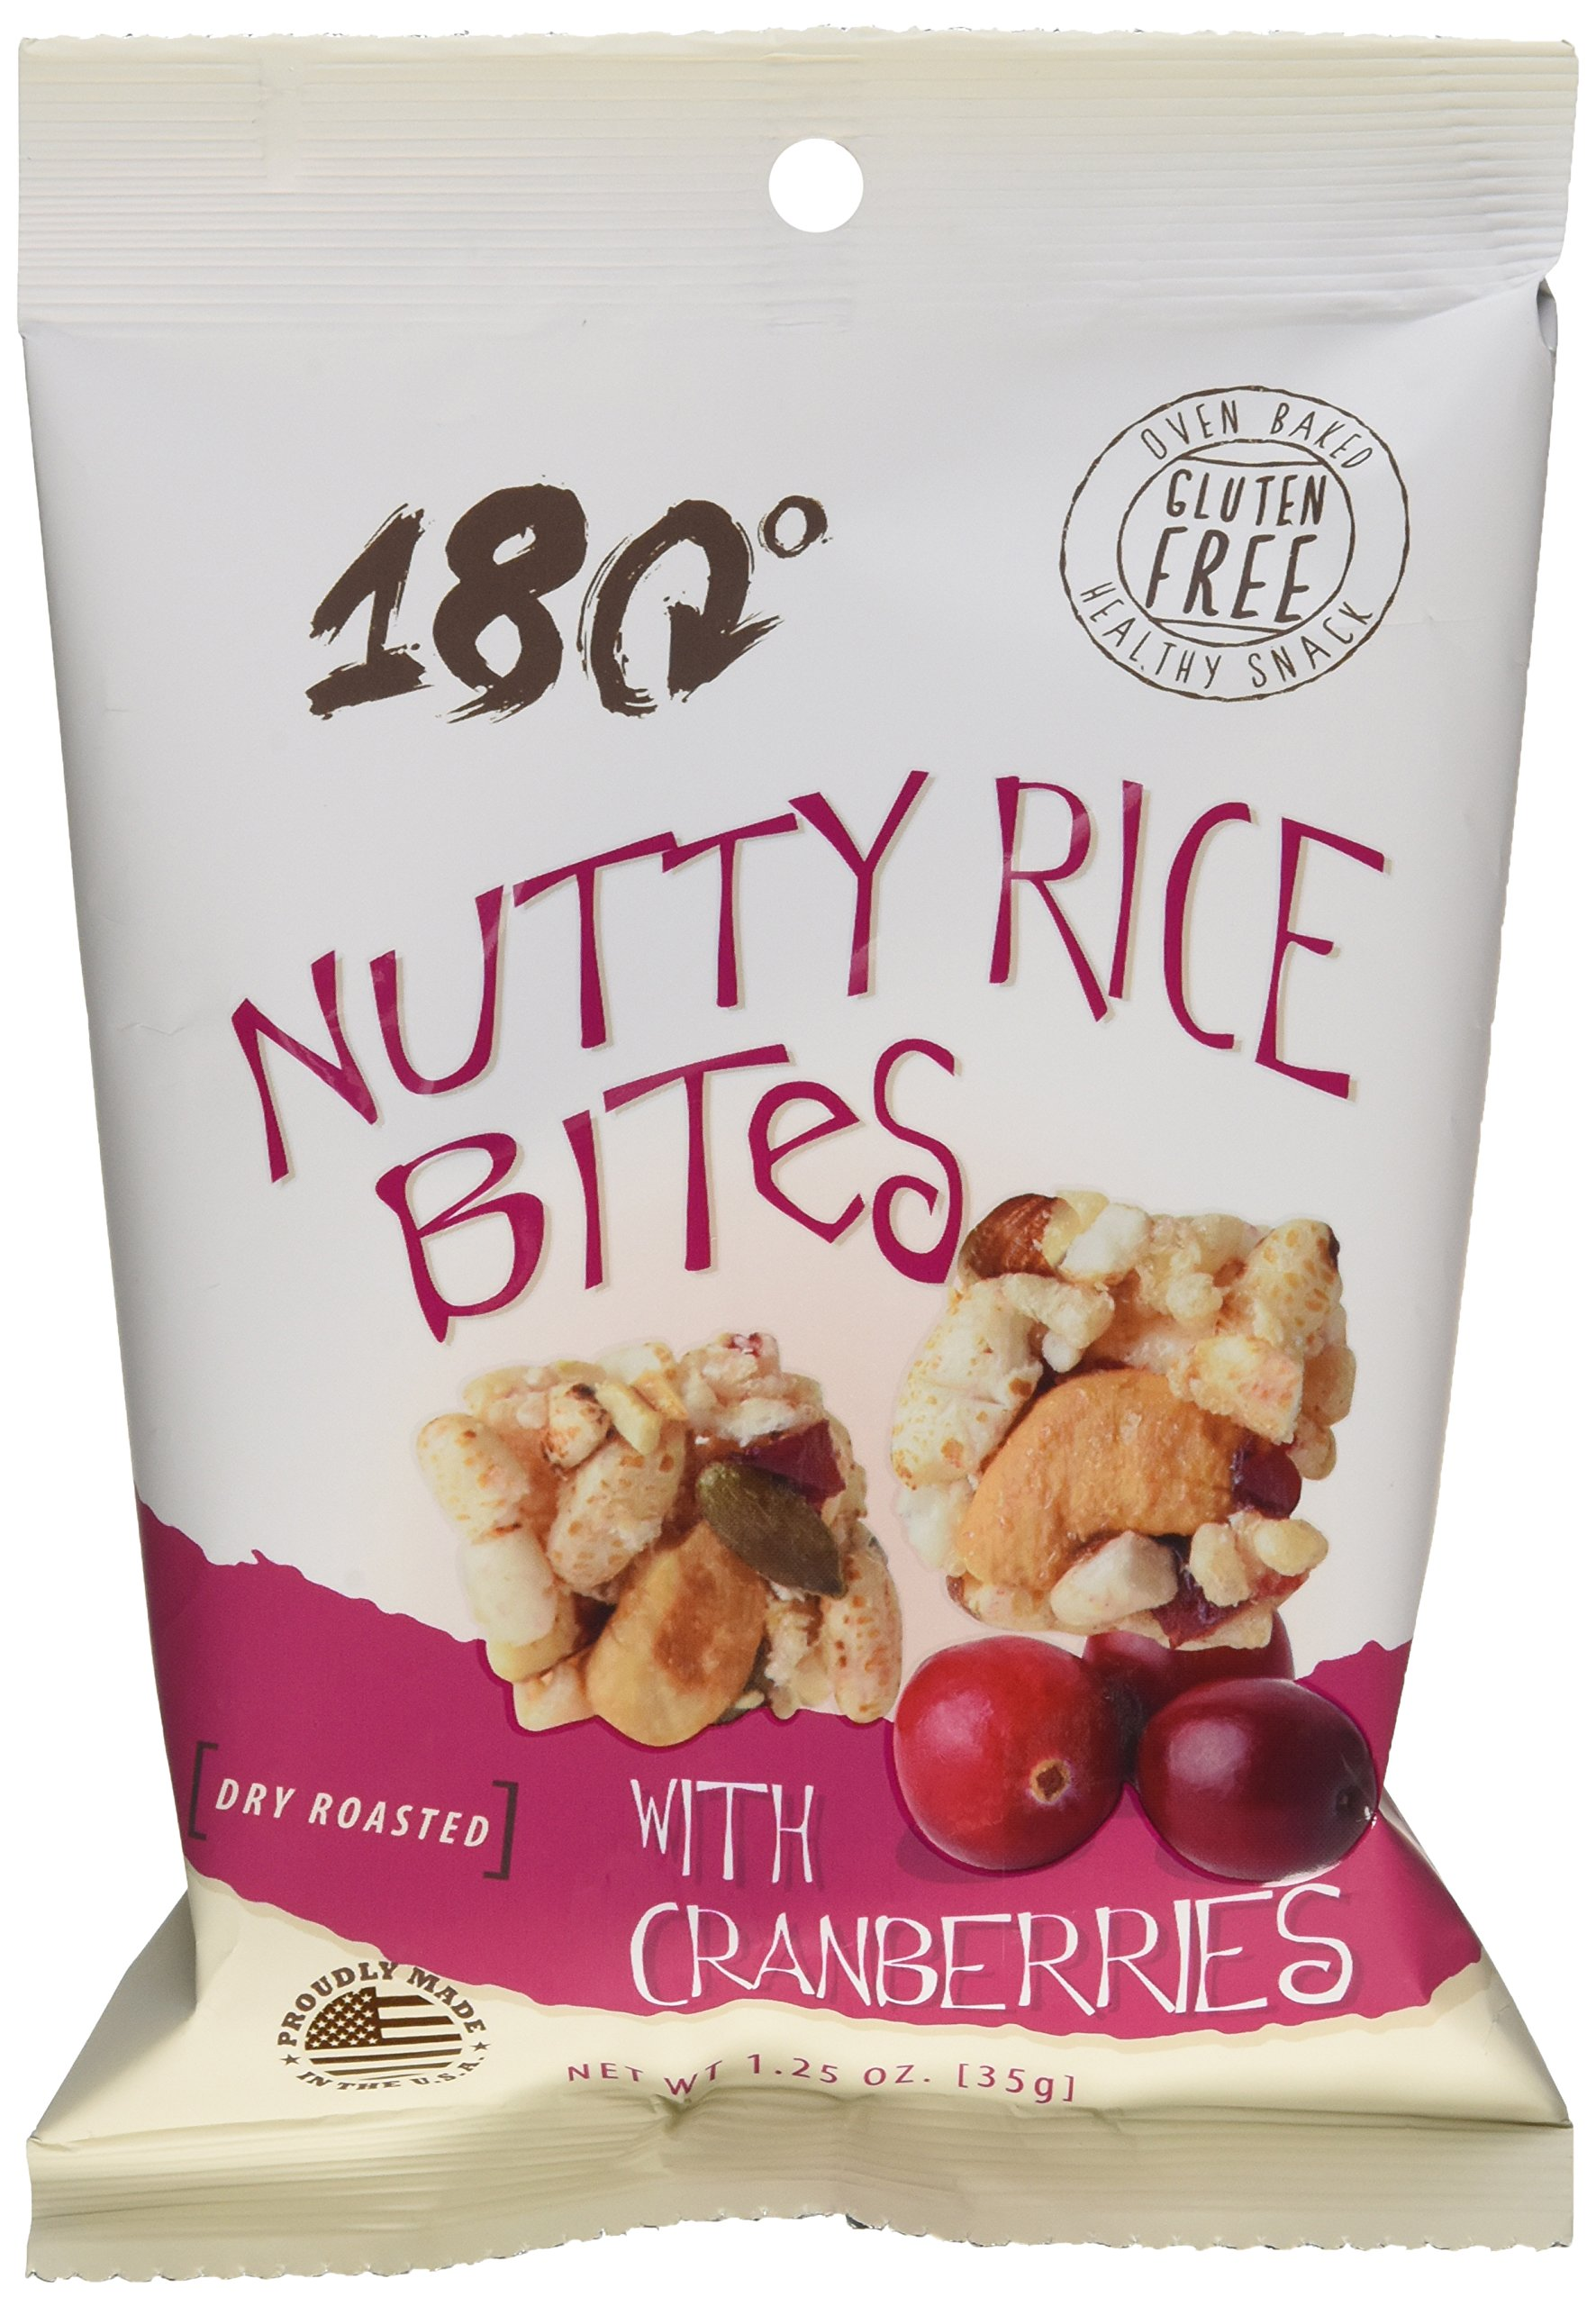 180 Snacks Nutty Rice Bites with Cranberries - Gluten Free, 1.25 oz Bag (Pack of 8) by 180 Snacks